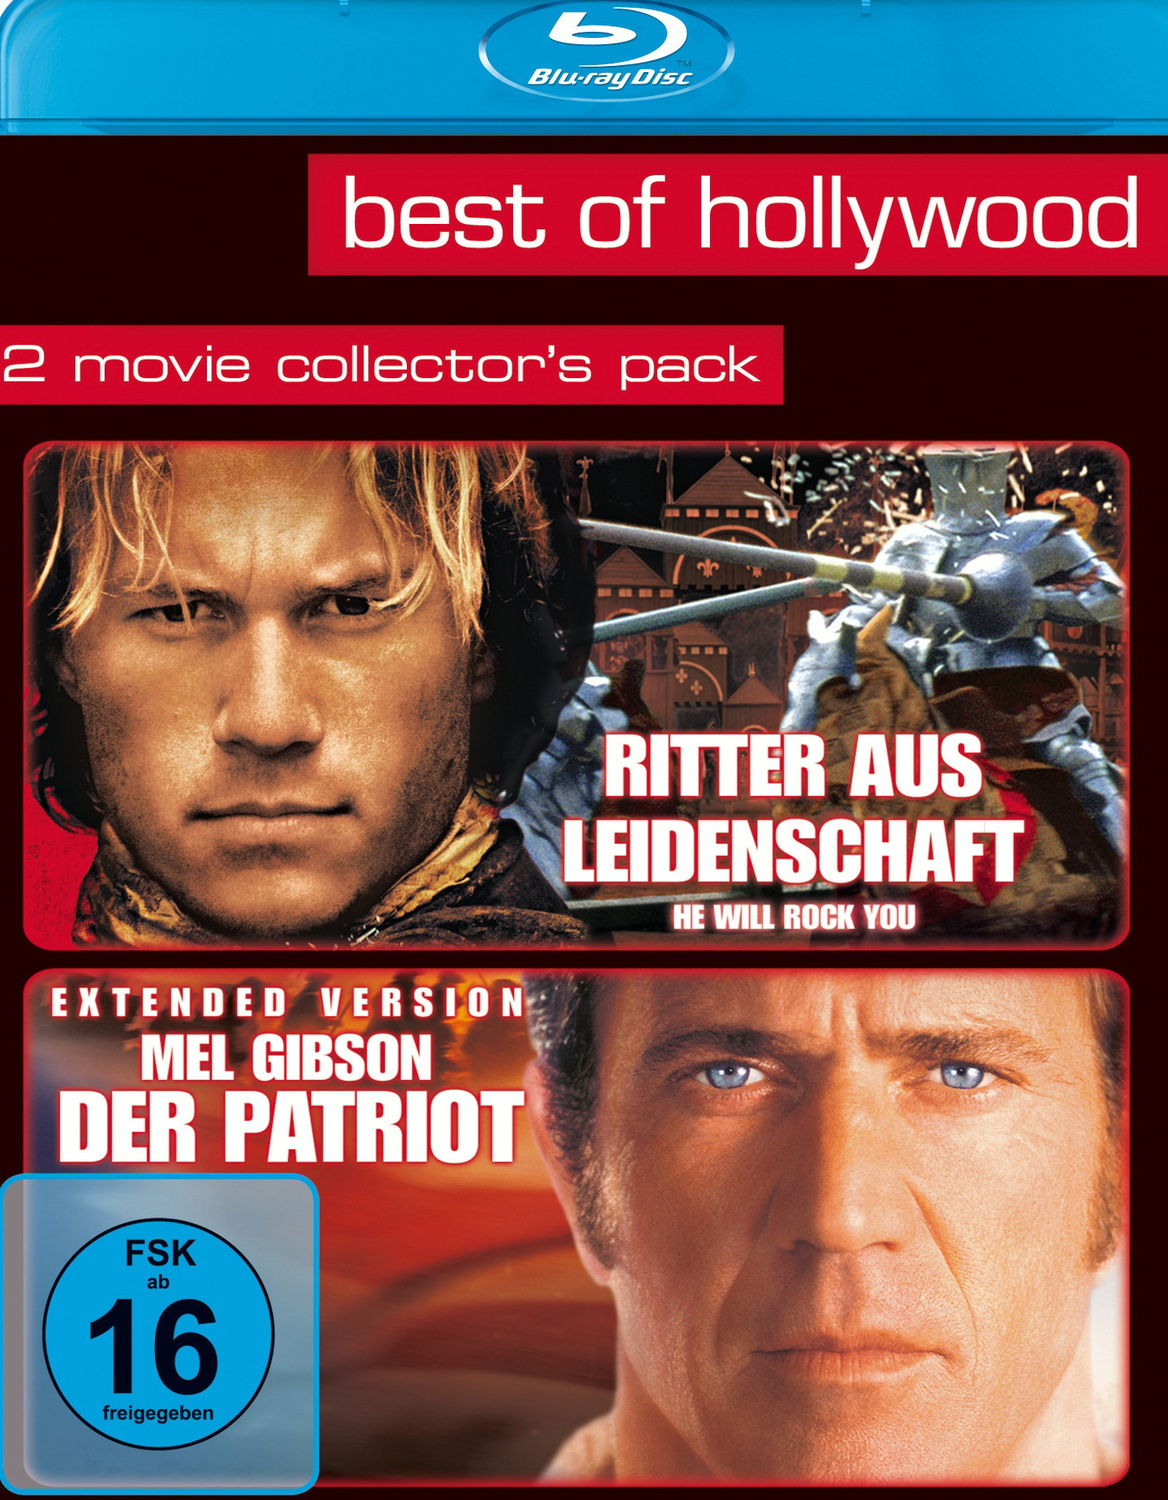 Best of Hollywood: 2 Movie Coll. 12 Ritter aus Leidenschaft/Mel Gibson-Der Patriot